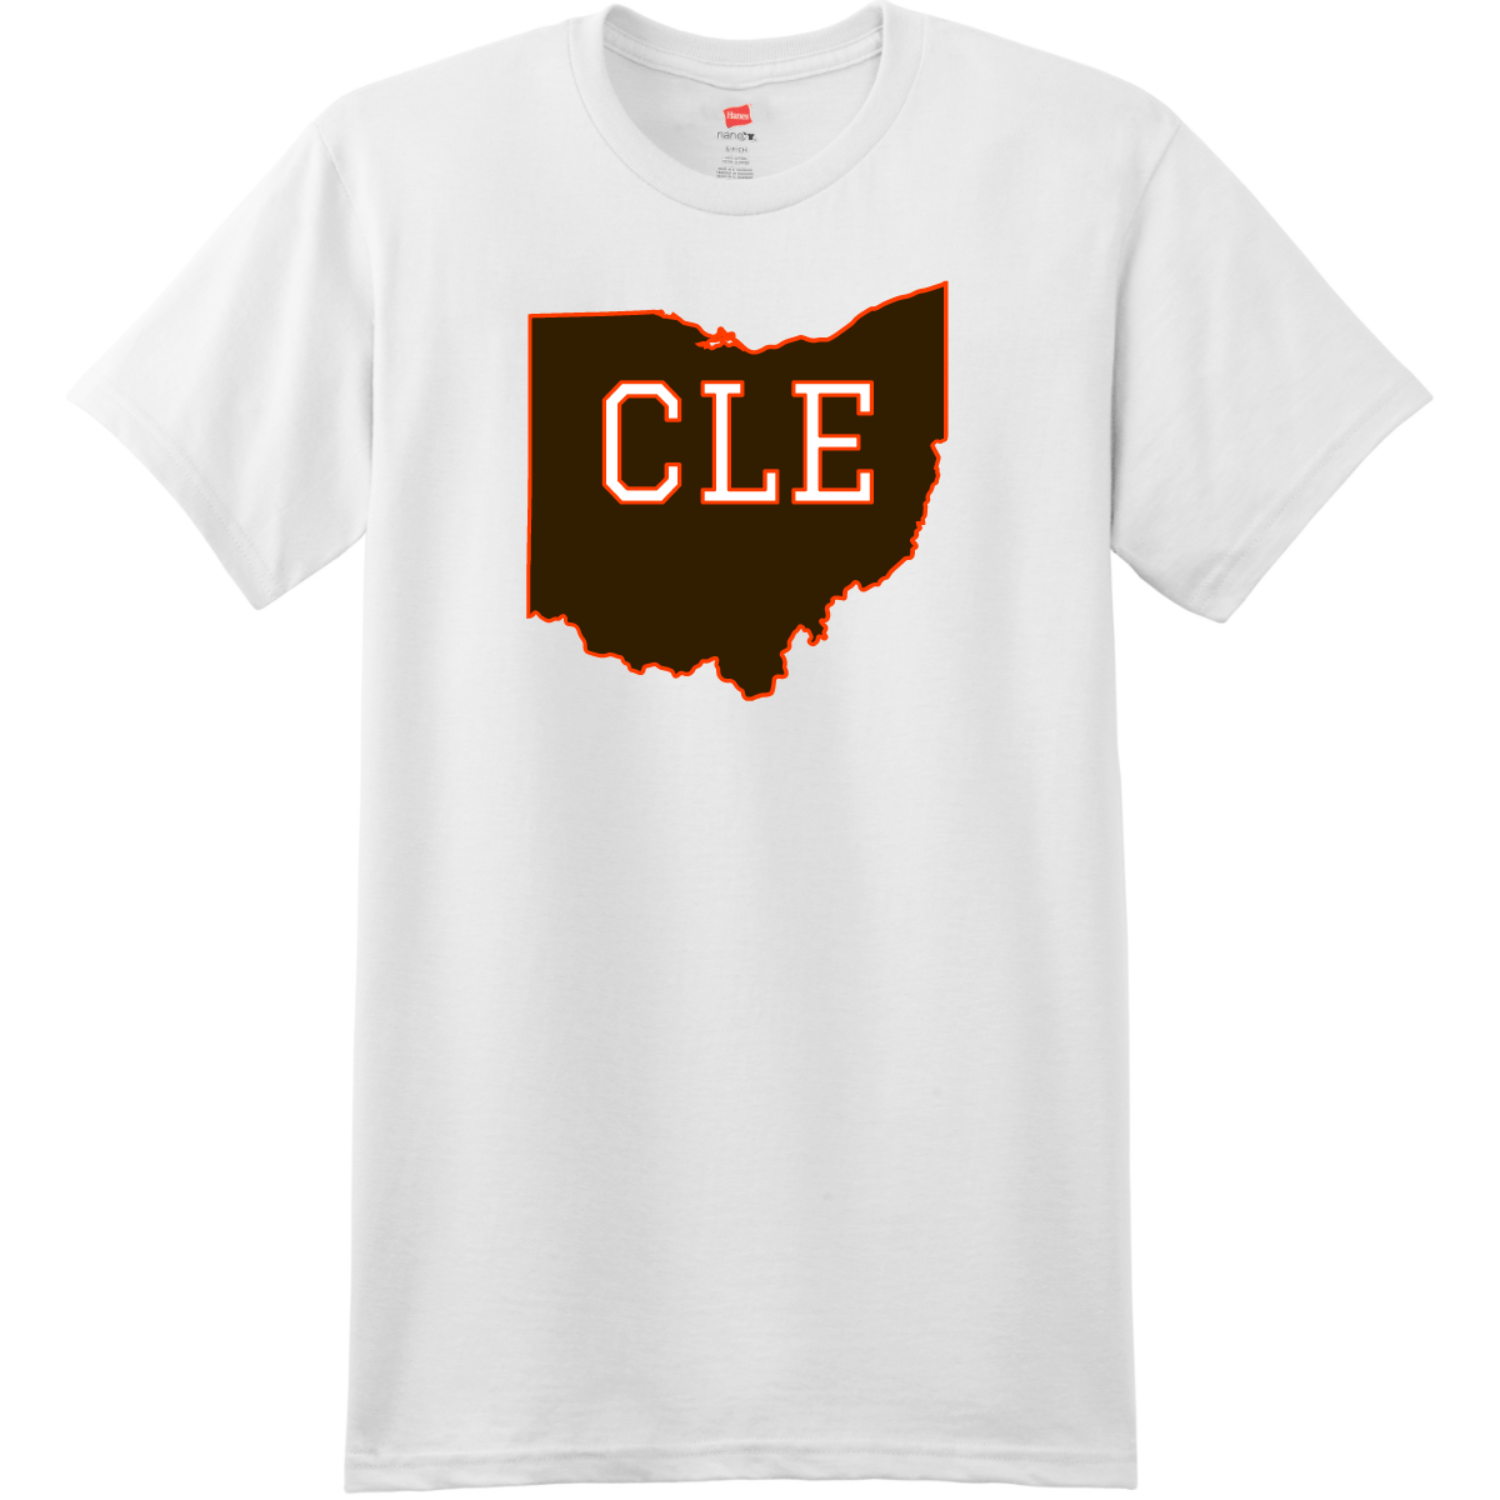 CLE Cleveland Ohio State T Shirt White Hanes Nano 4980 Ringspun Cotton T Shirt